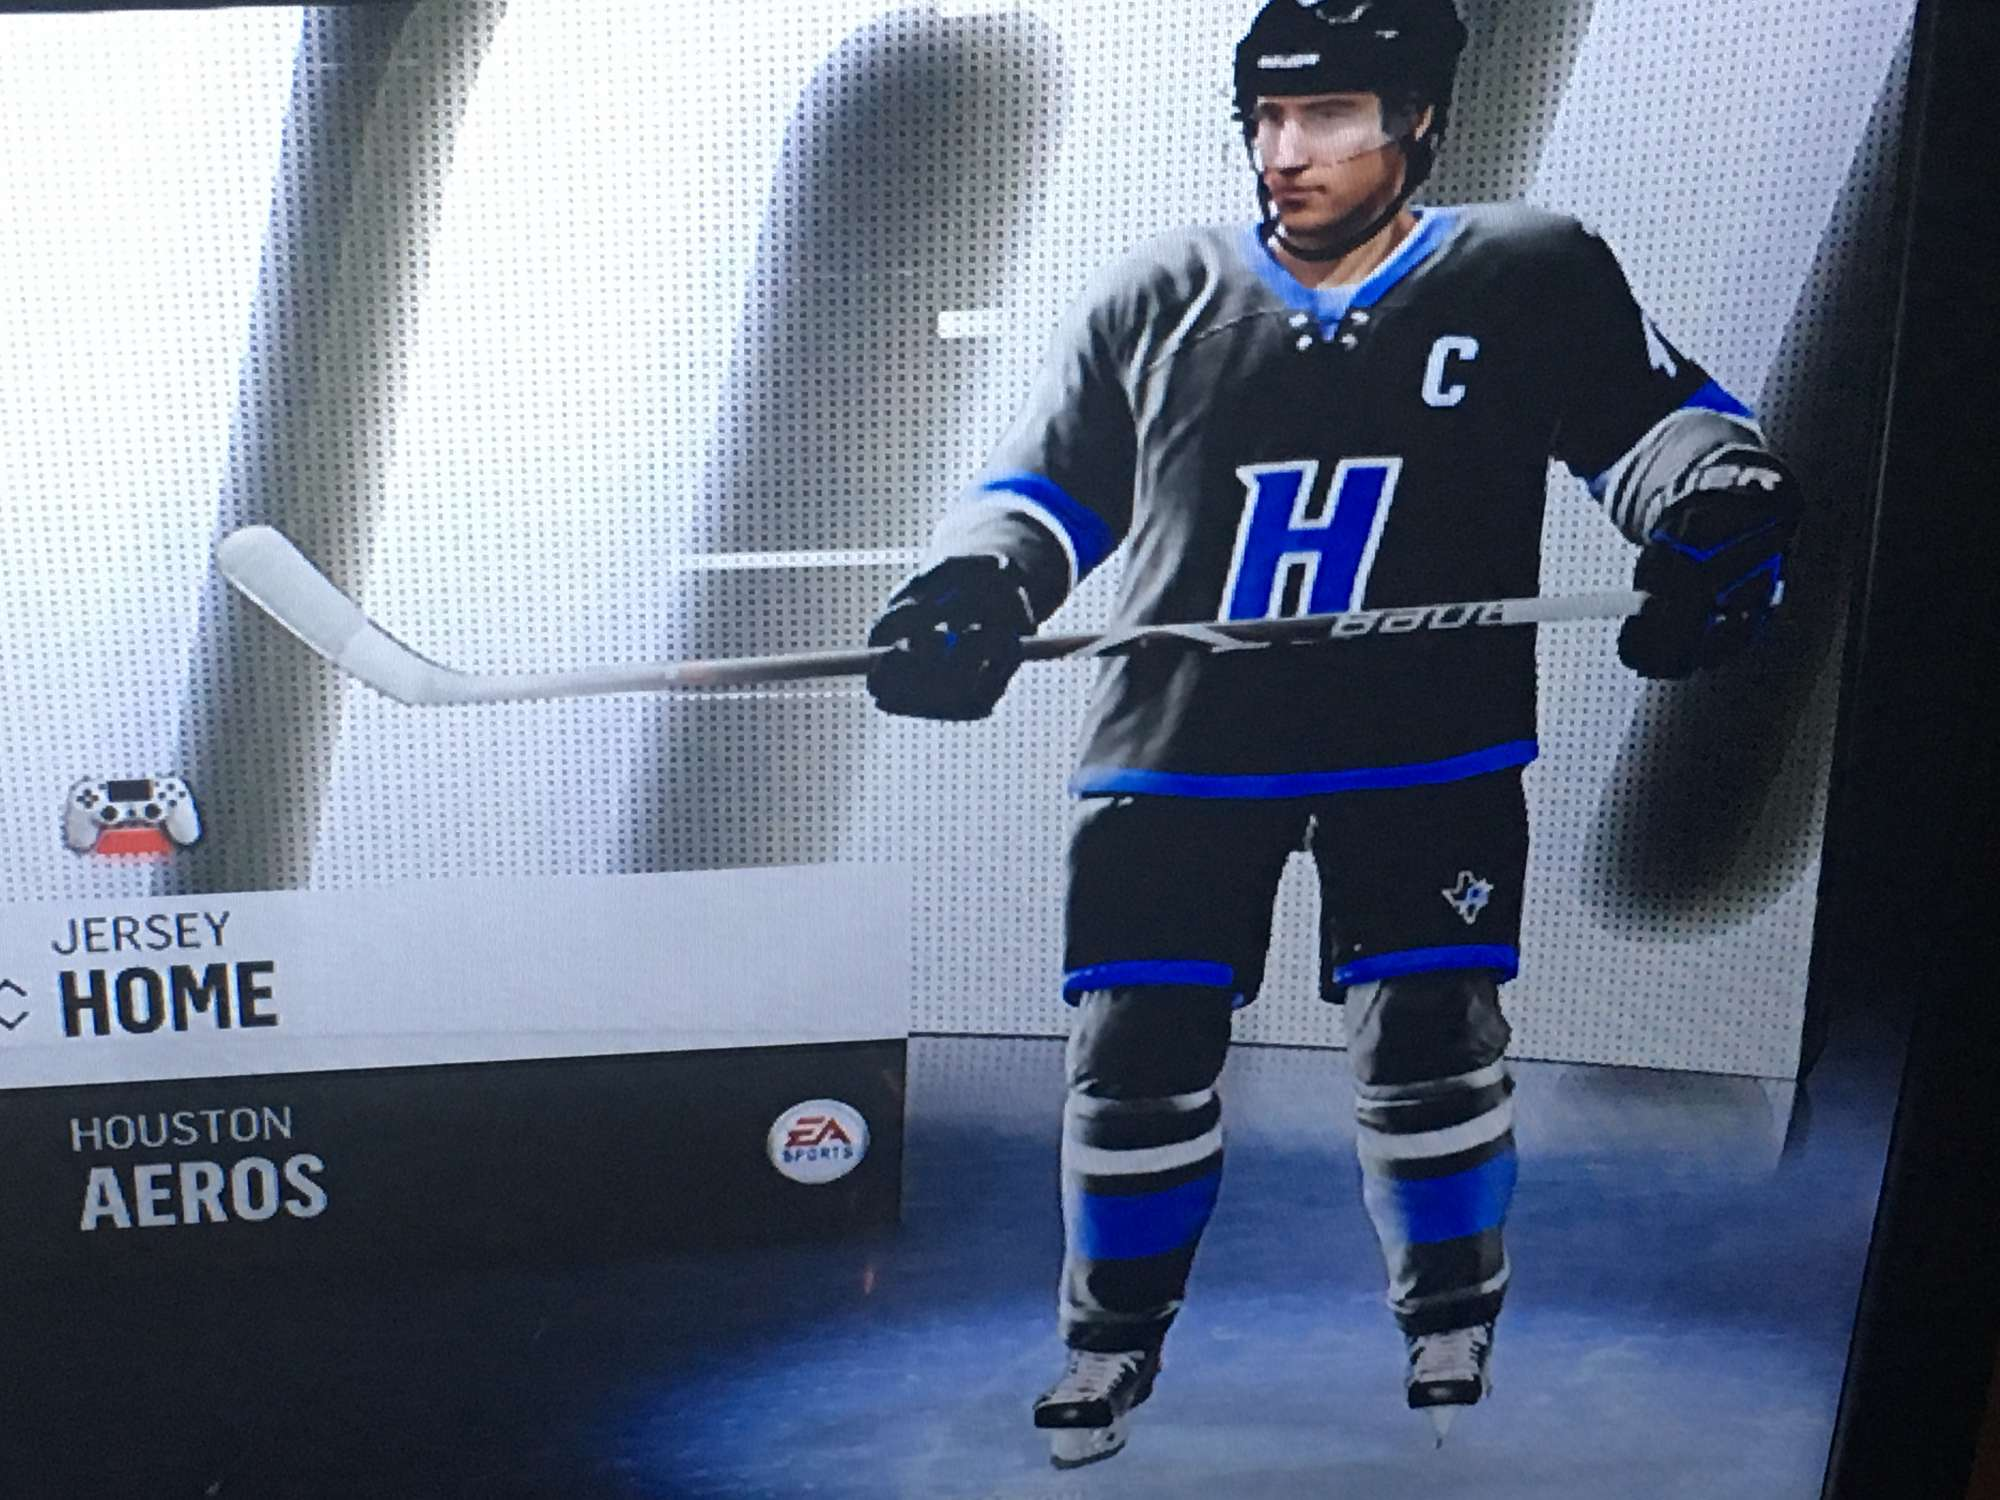 Uniforms created in NHL 18 (Share yours) - Concepts - Chris ... 807b389e0f1